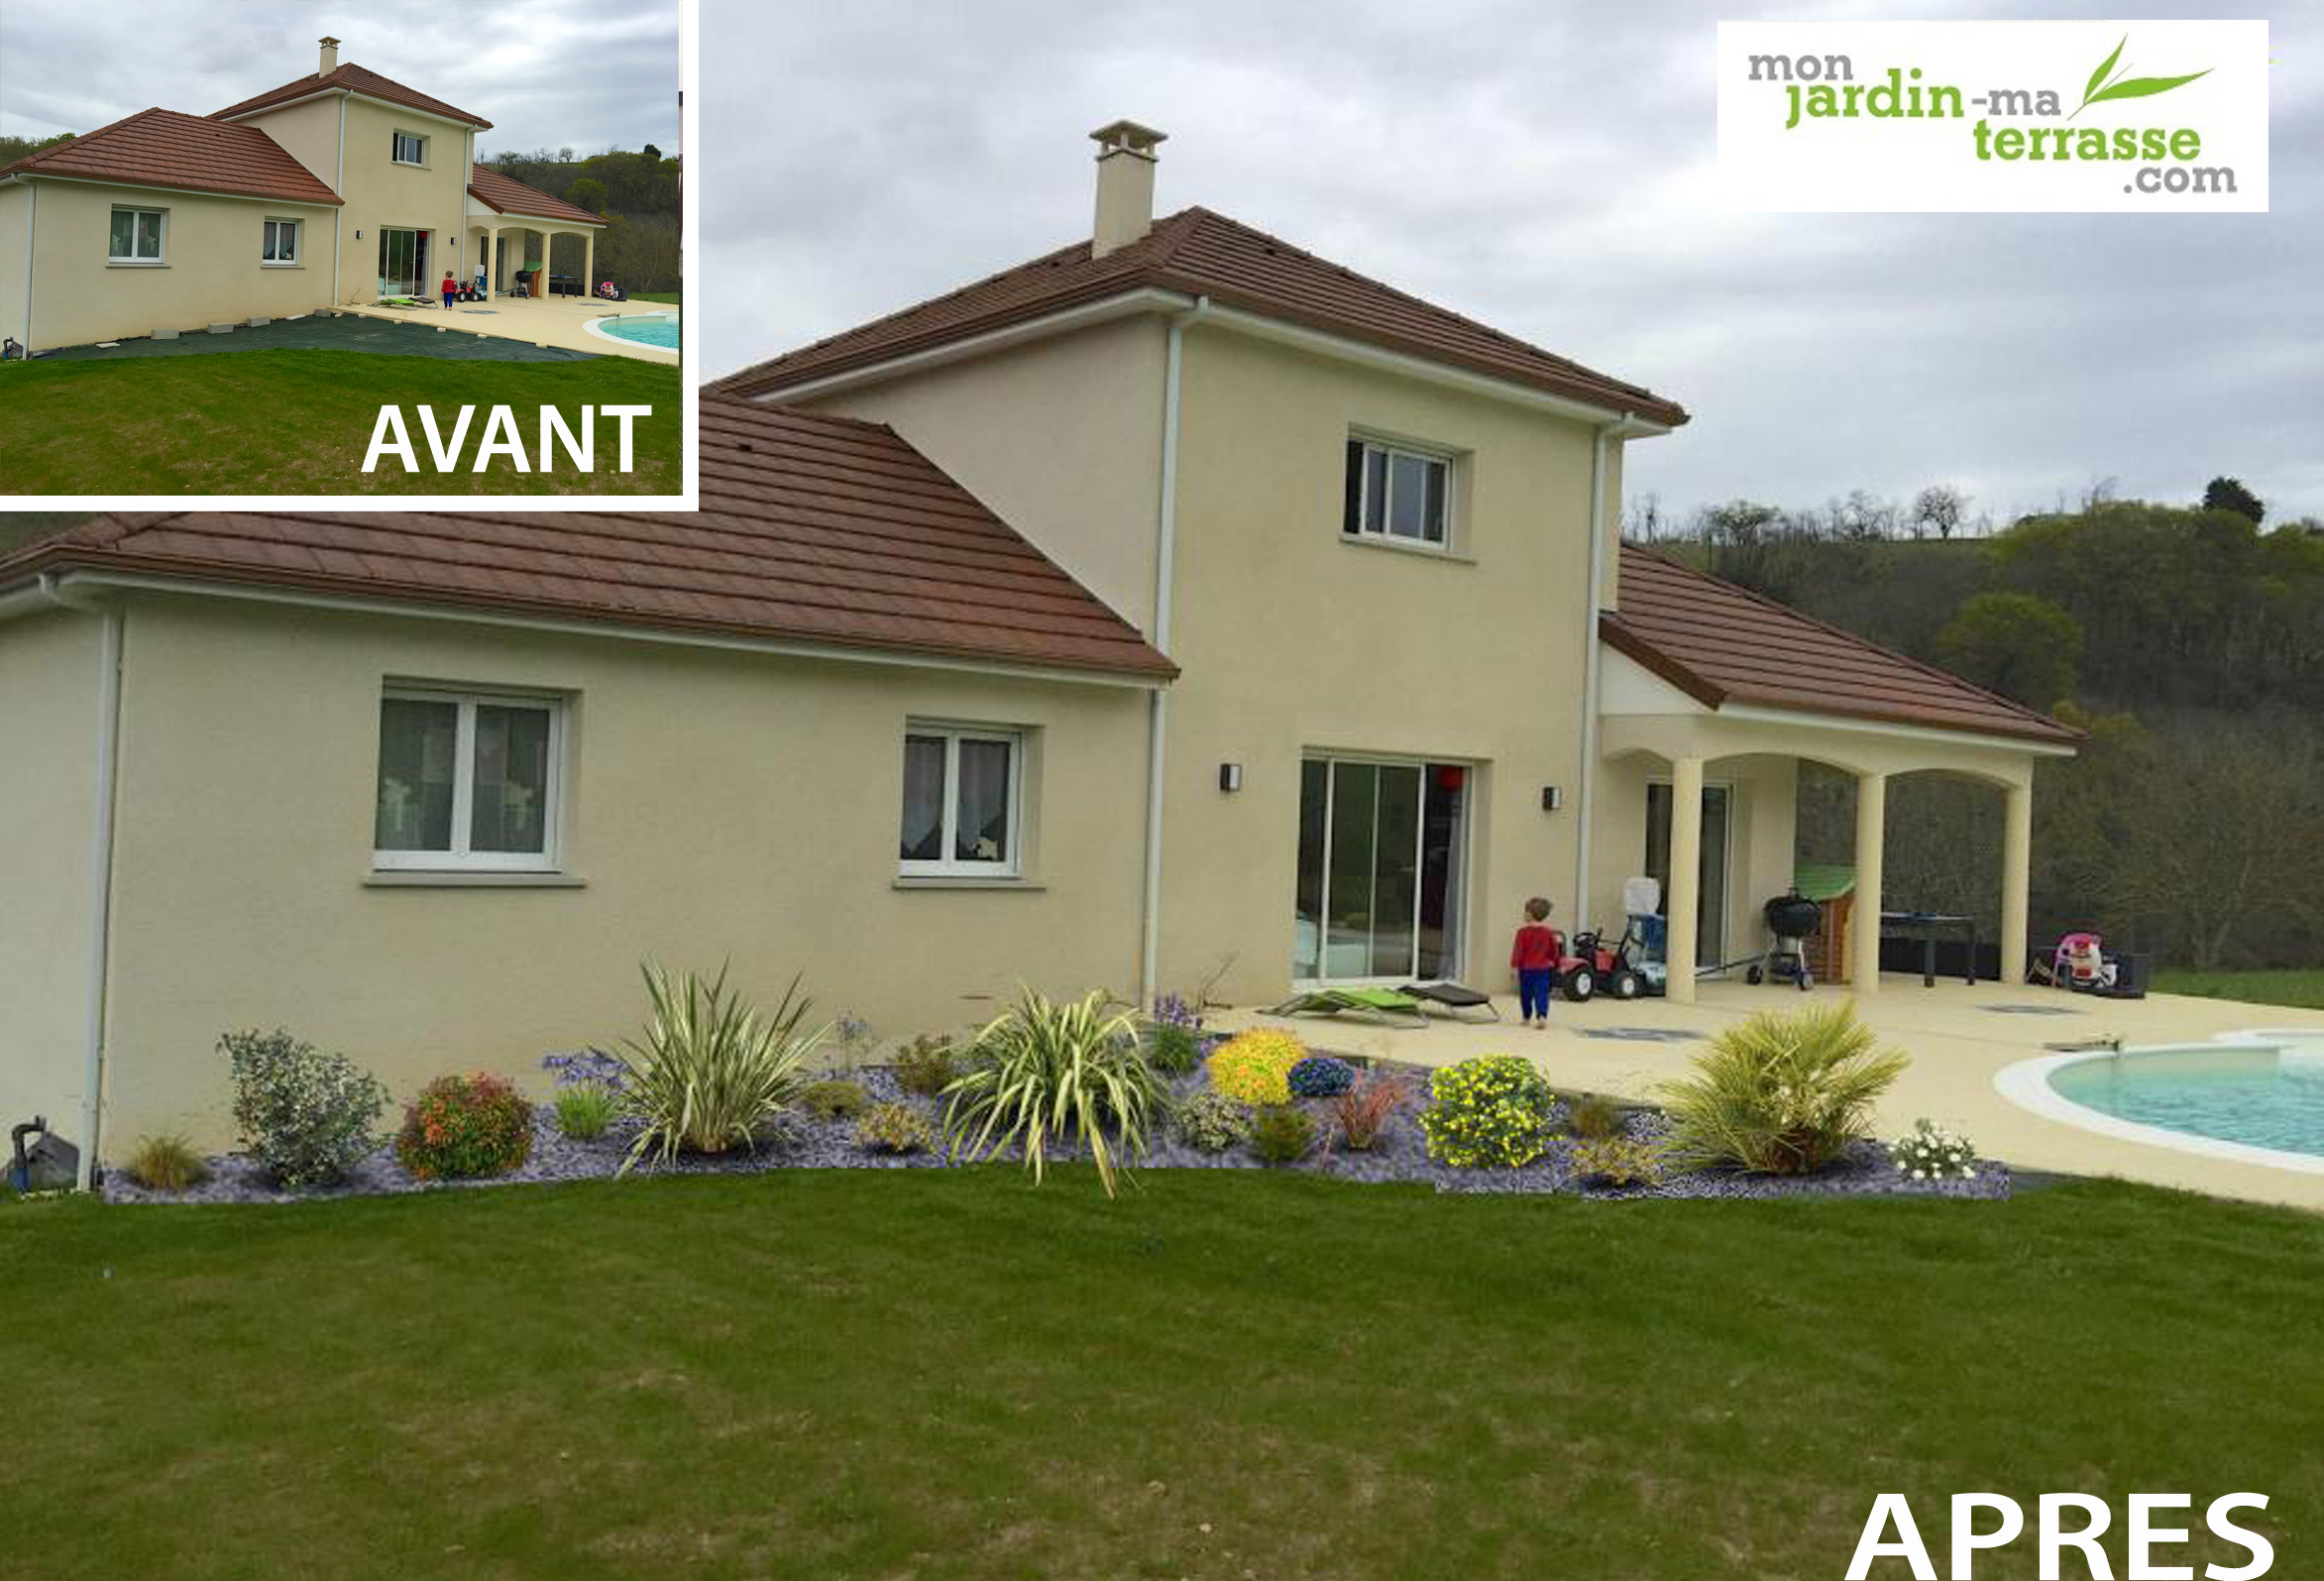 Am nagement ext rieur devant une maison monjardin for Amenagement exterieur de maison photos